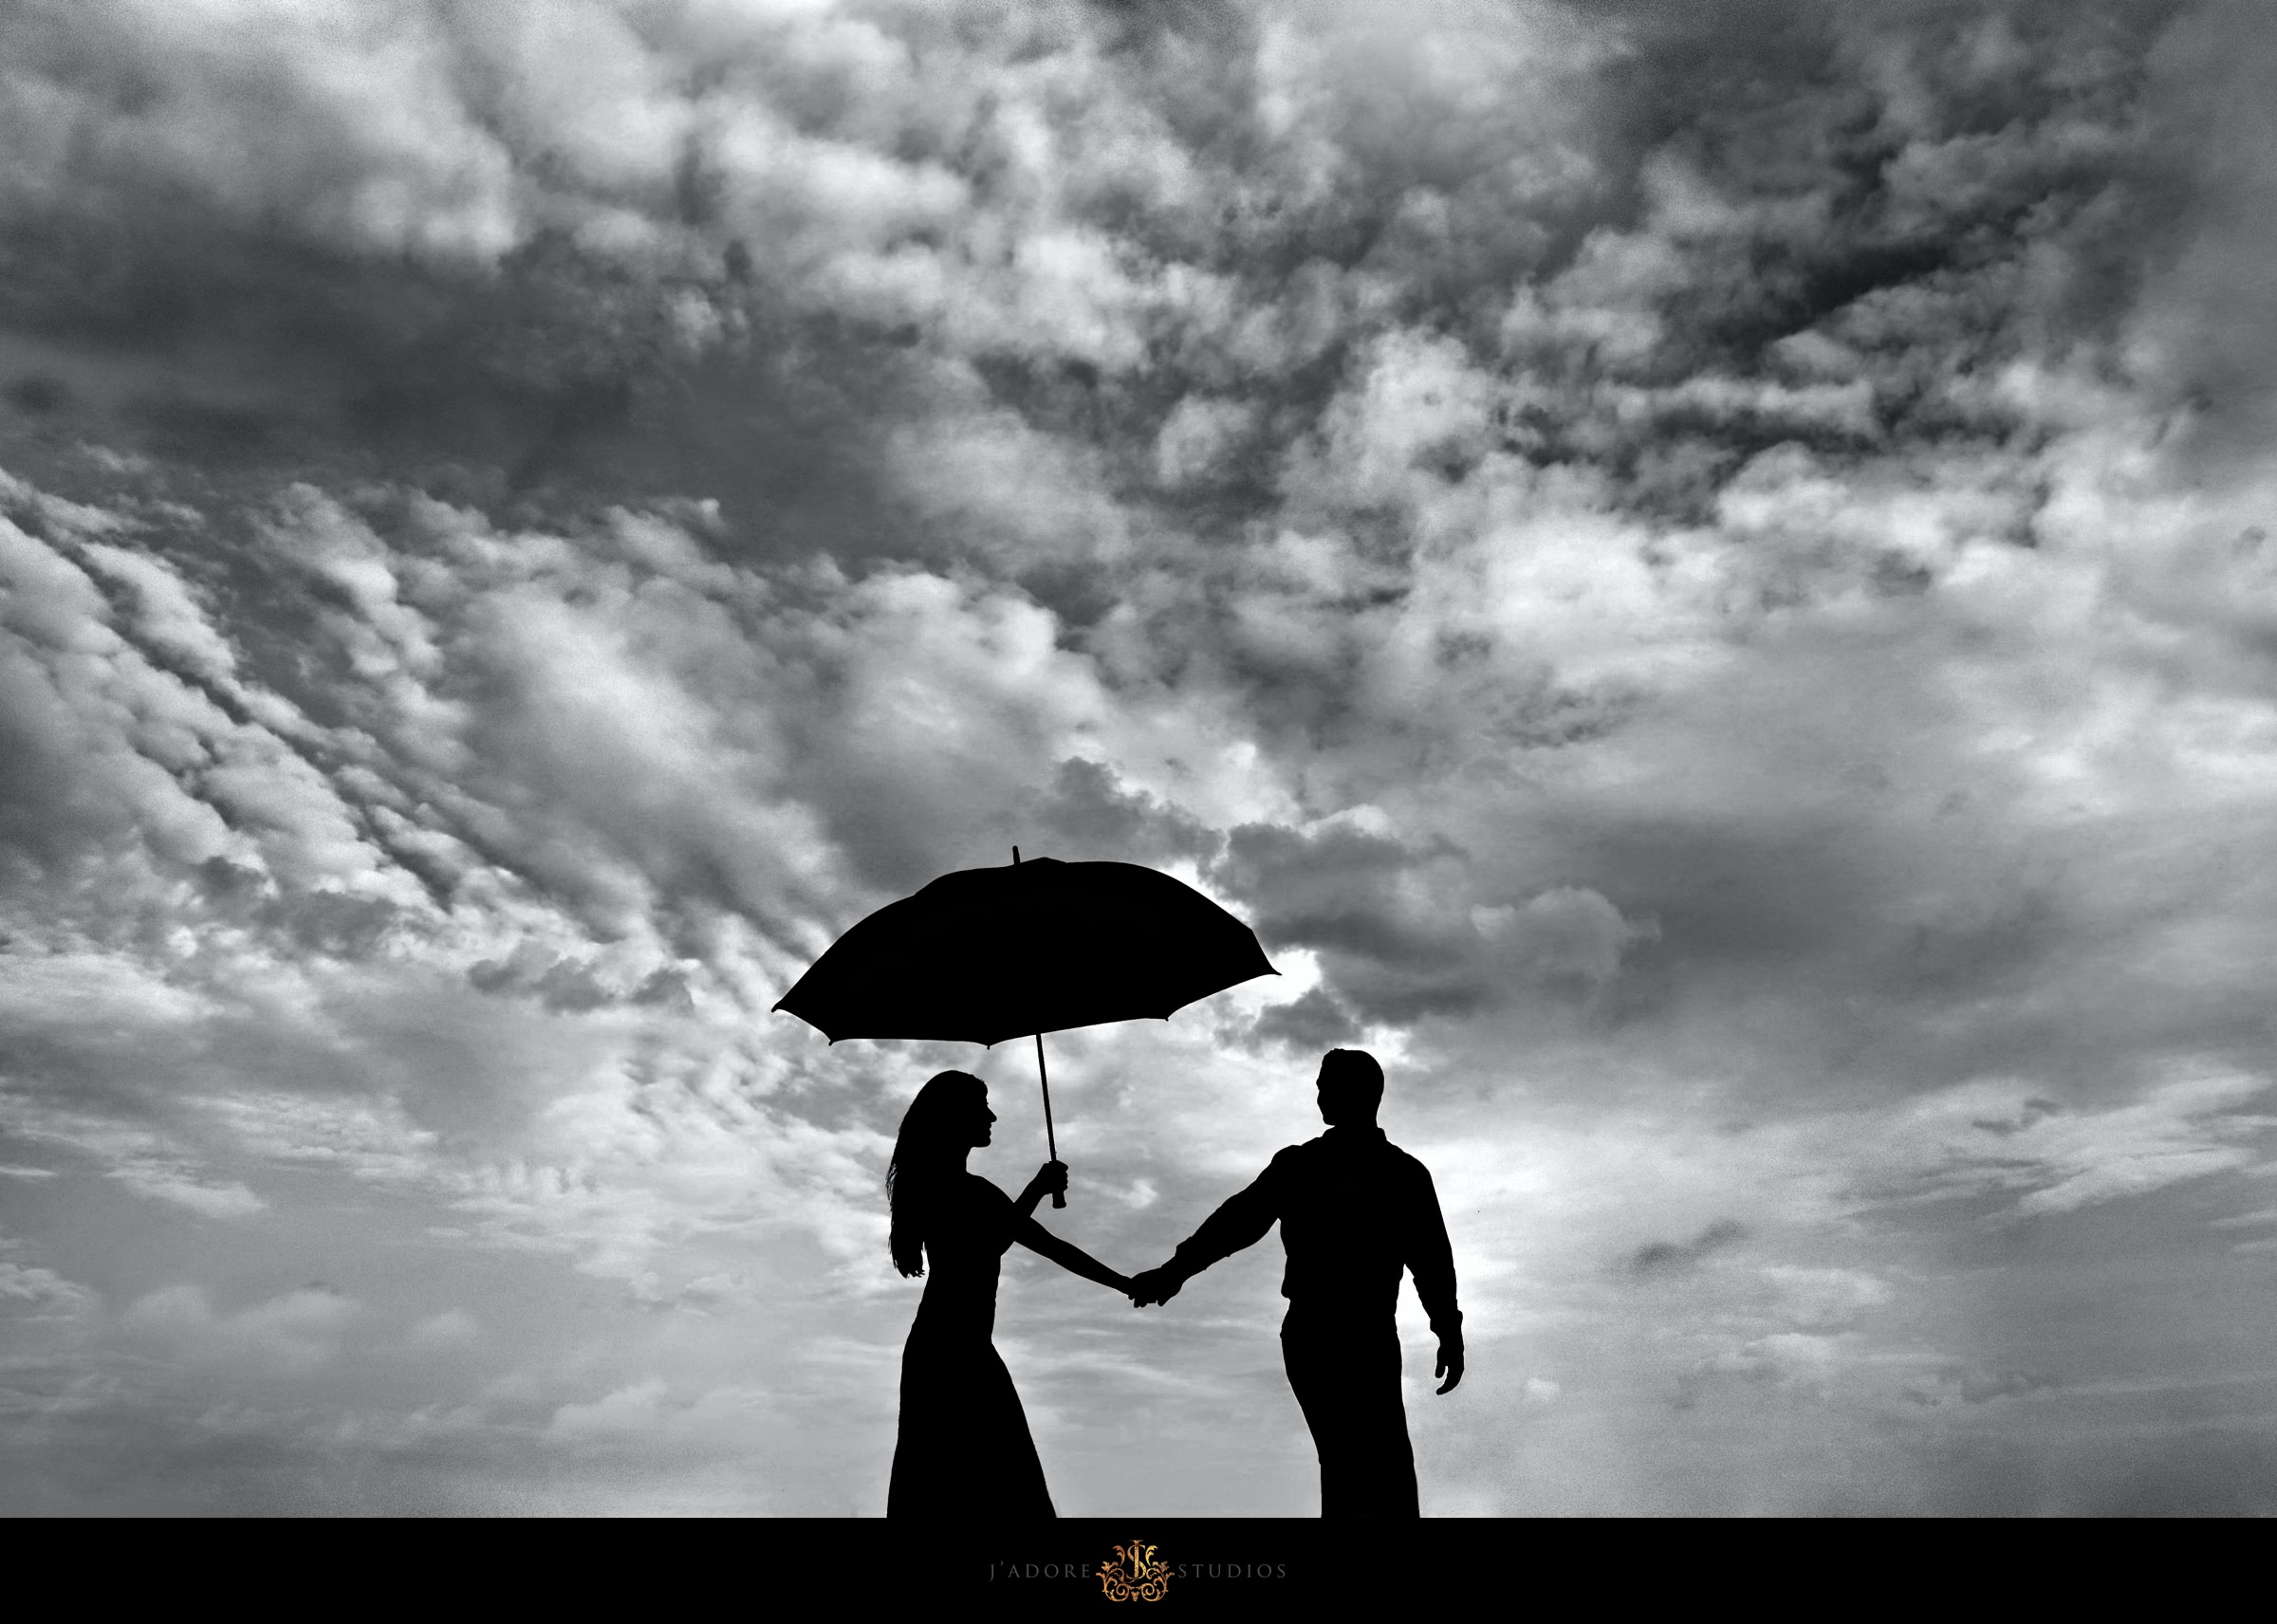 Black and White Silhouette photo of couple under an umbrella in front of cloudy rainy sky at Oyster Bay Yacht Club